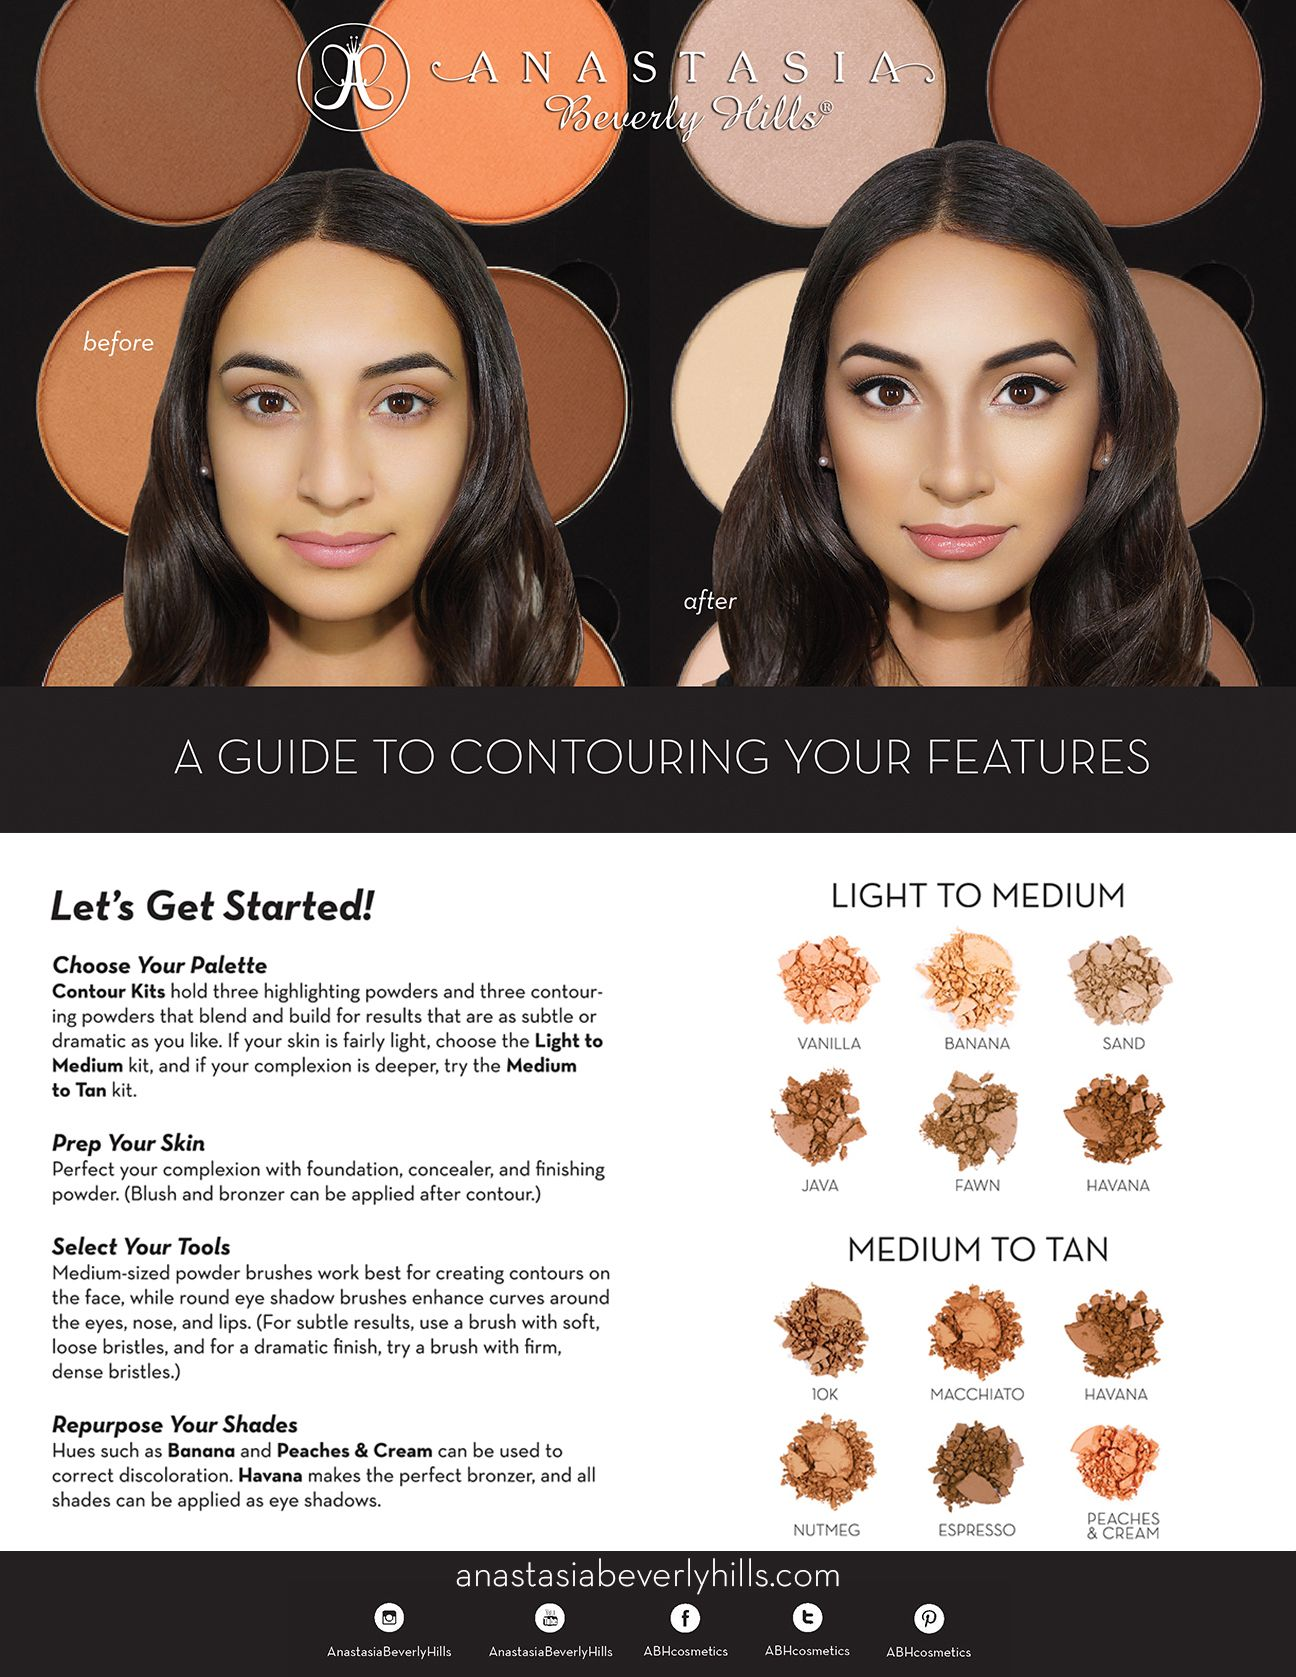 A guide to Contouring your features from Anastasia Beverly Hills #BeyondTheBrow